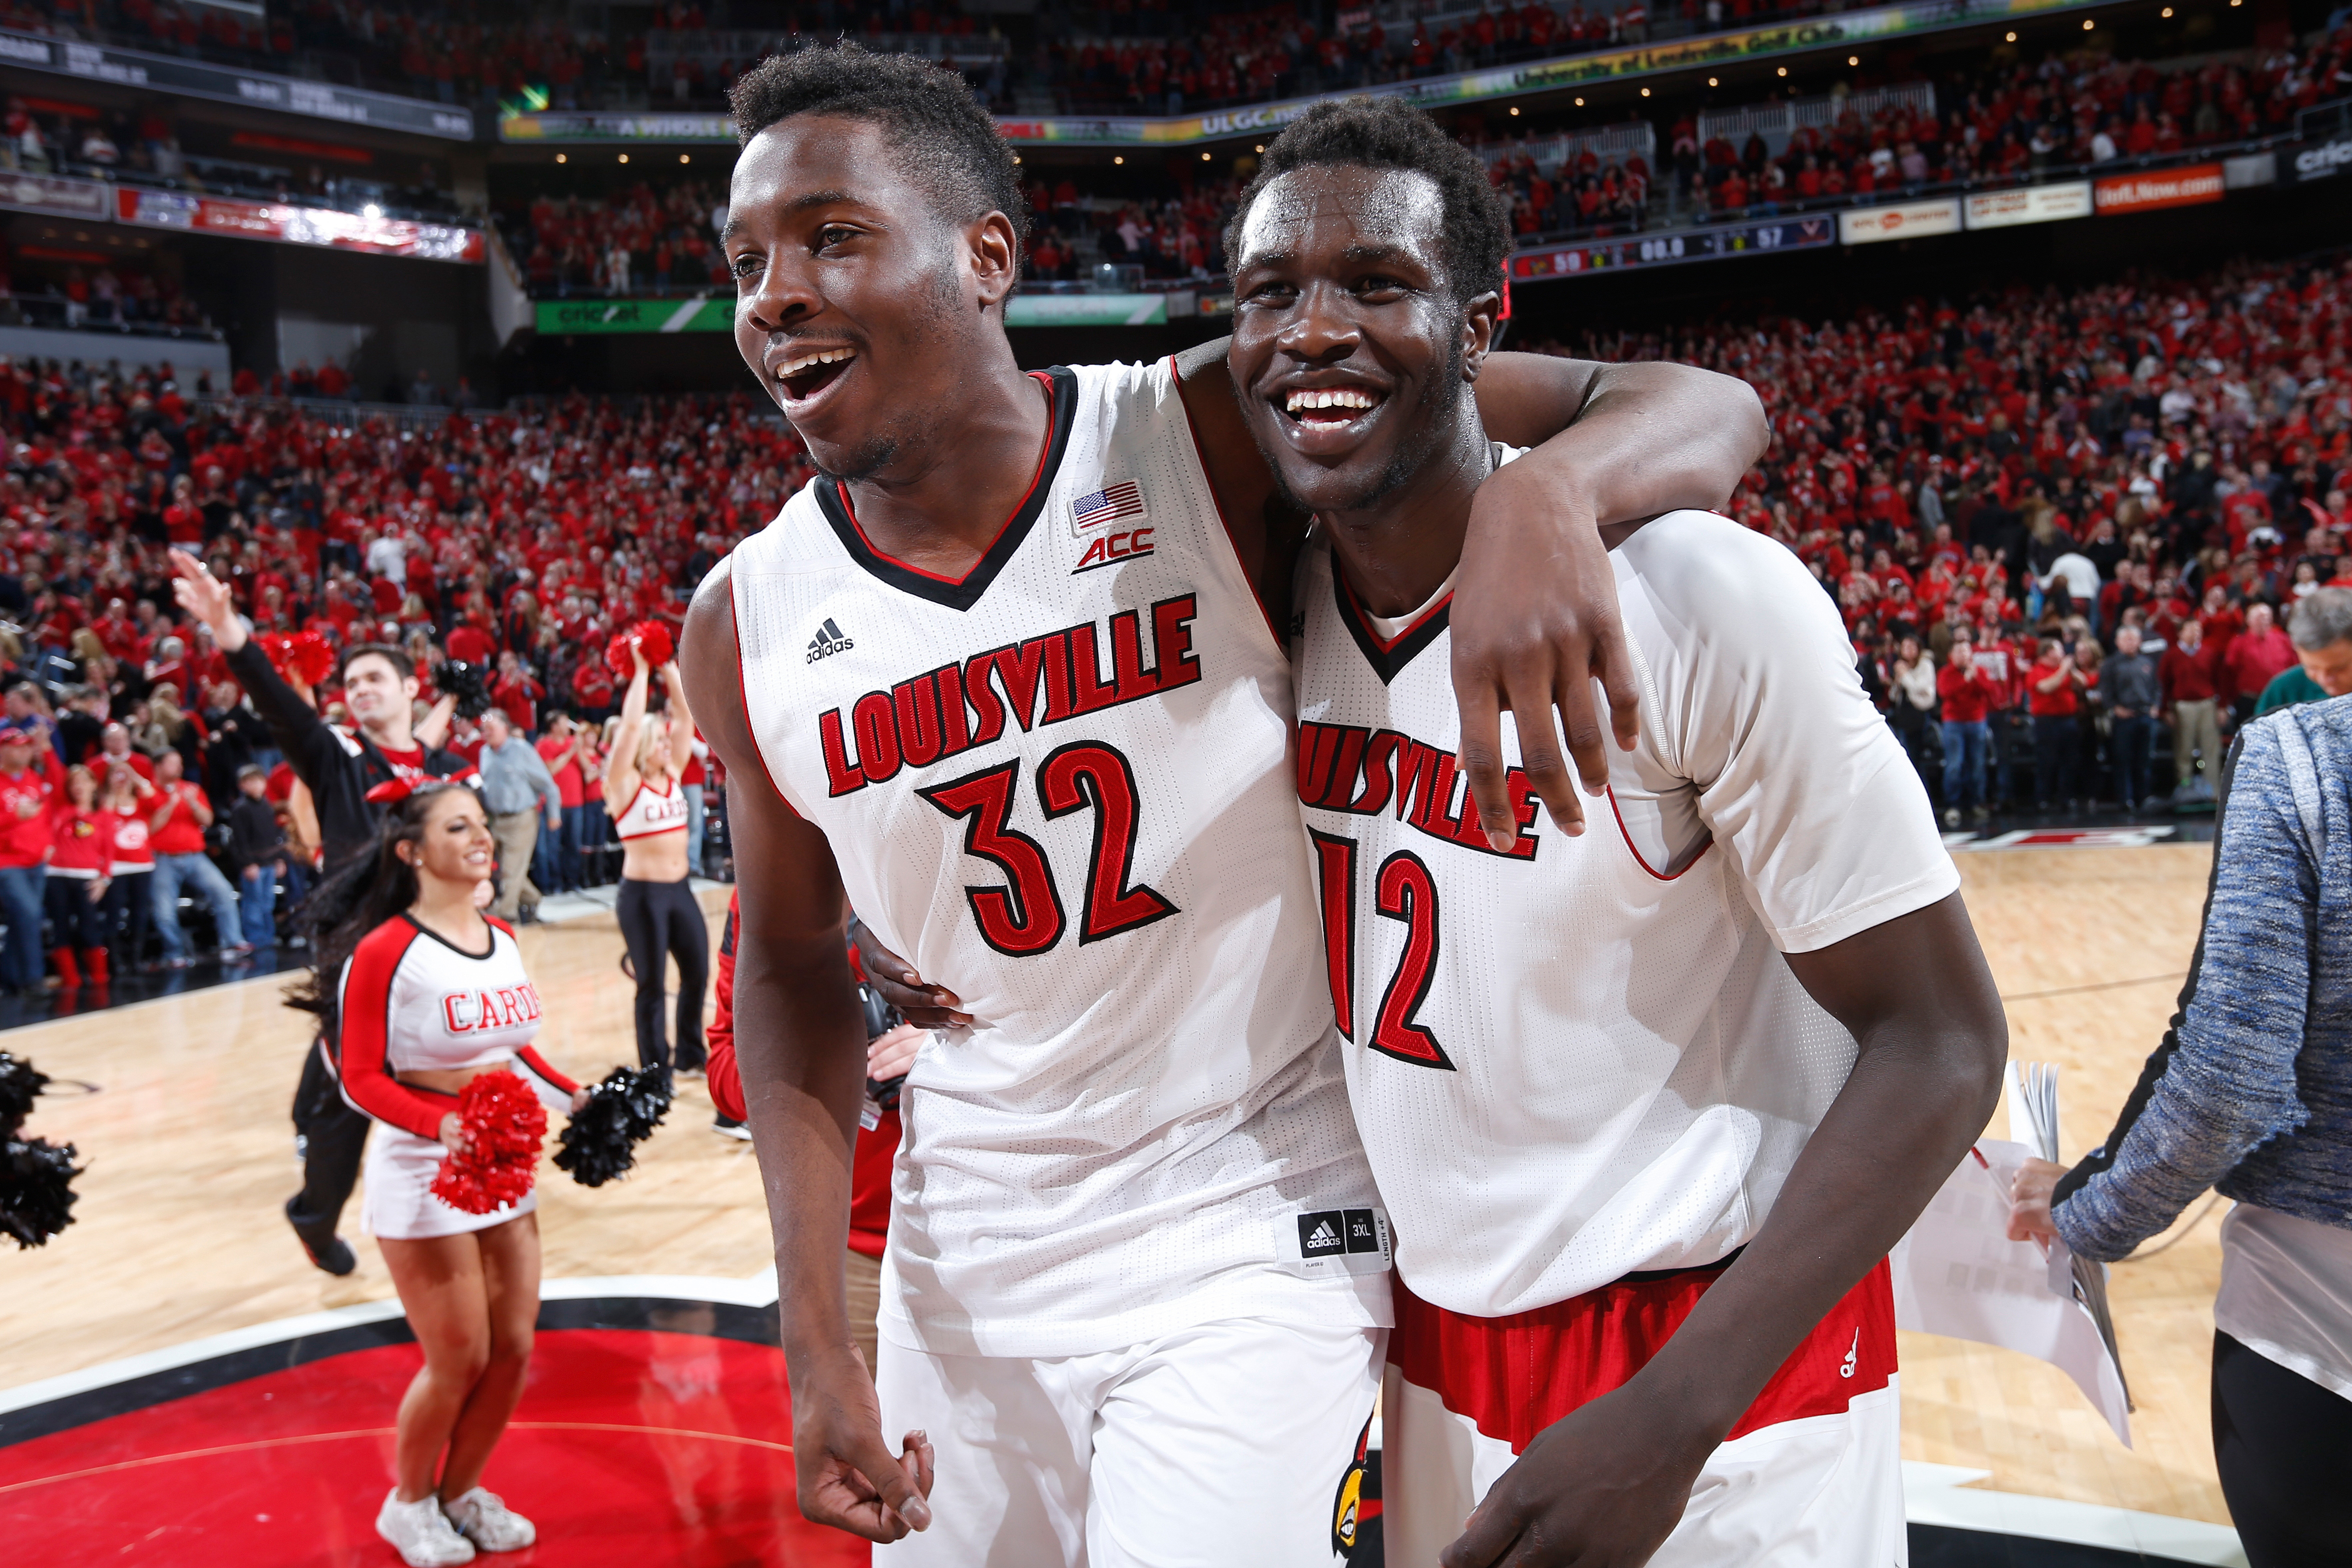 Mangok Mathiang #12 of the Louisville Cardinals celebrates his winning basket with teammate Chinanu Onuaku #32 after the game against the Virginia Cavaliers at KFC Yum! Center on March 7, 2015 in Louisville, Kentucky. Louisville defeated Virginia 59-57.